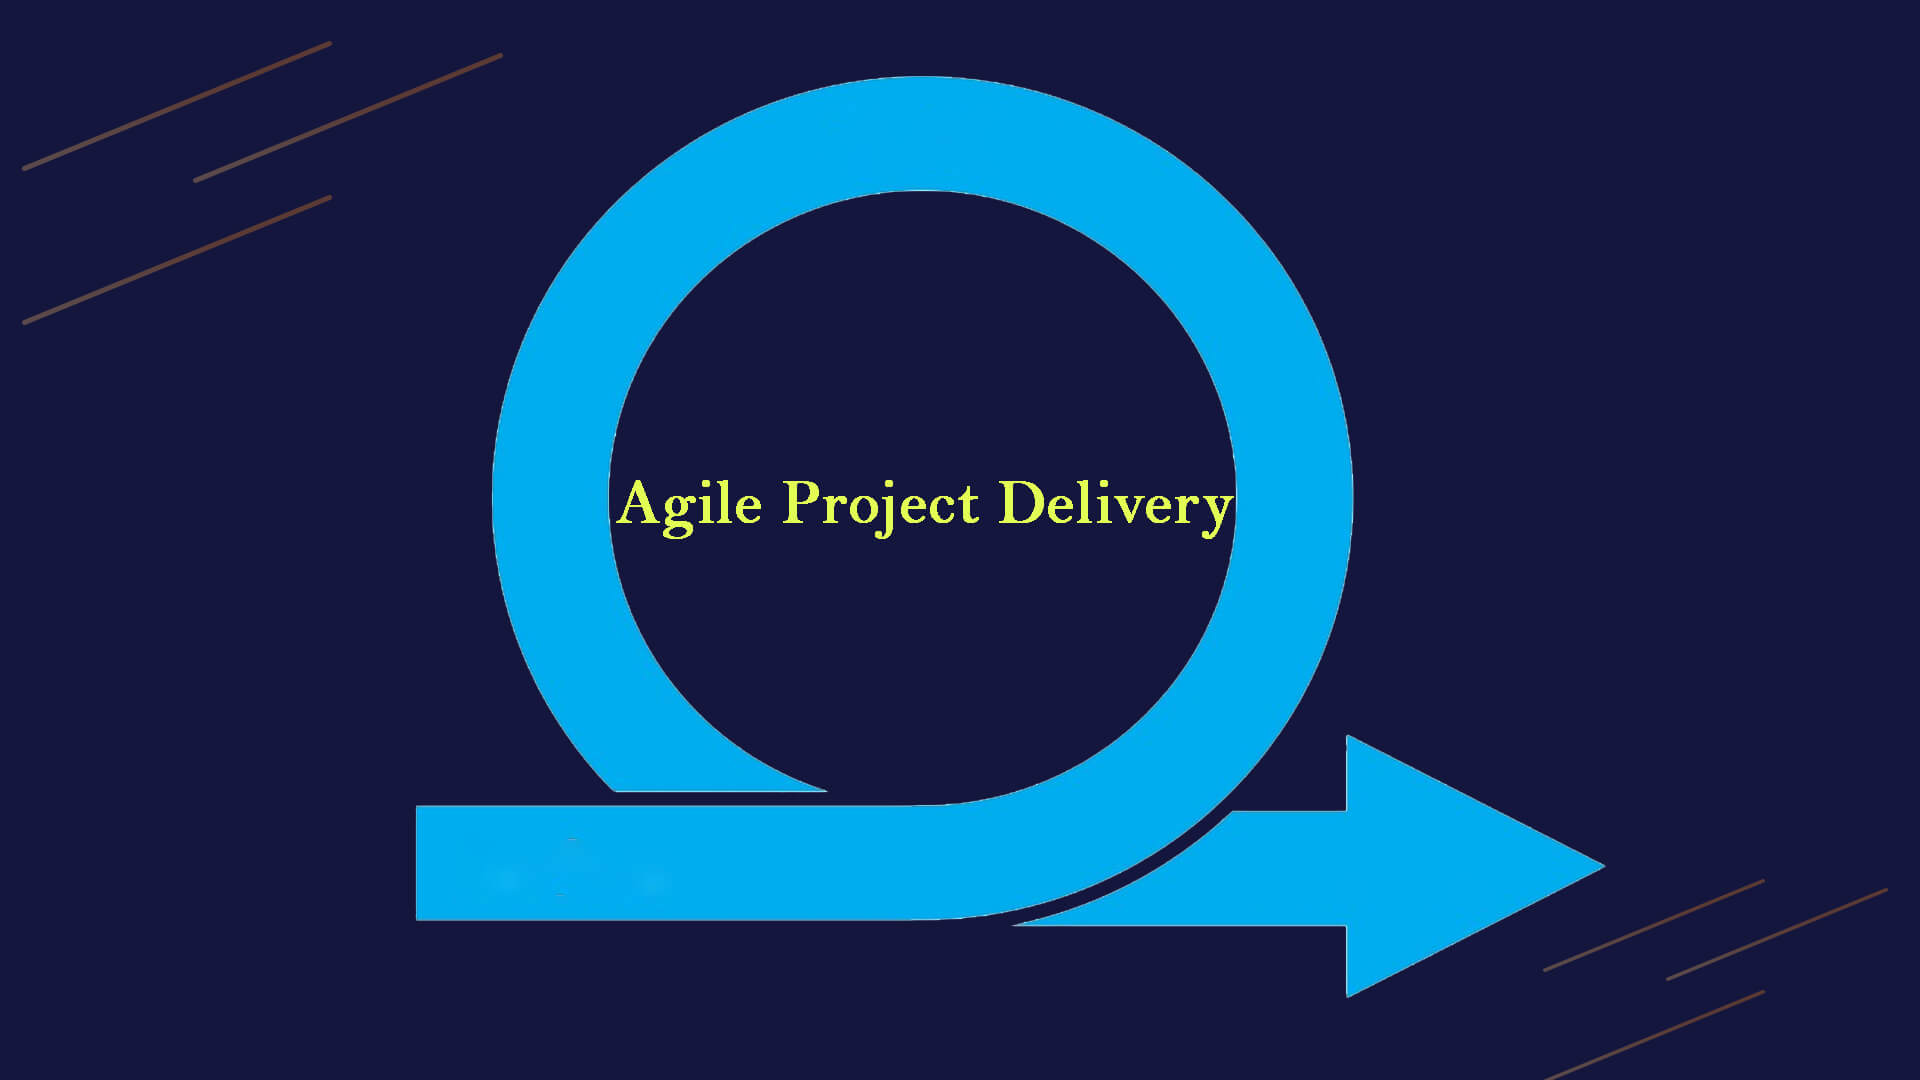 Agile Project Delivery online videos